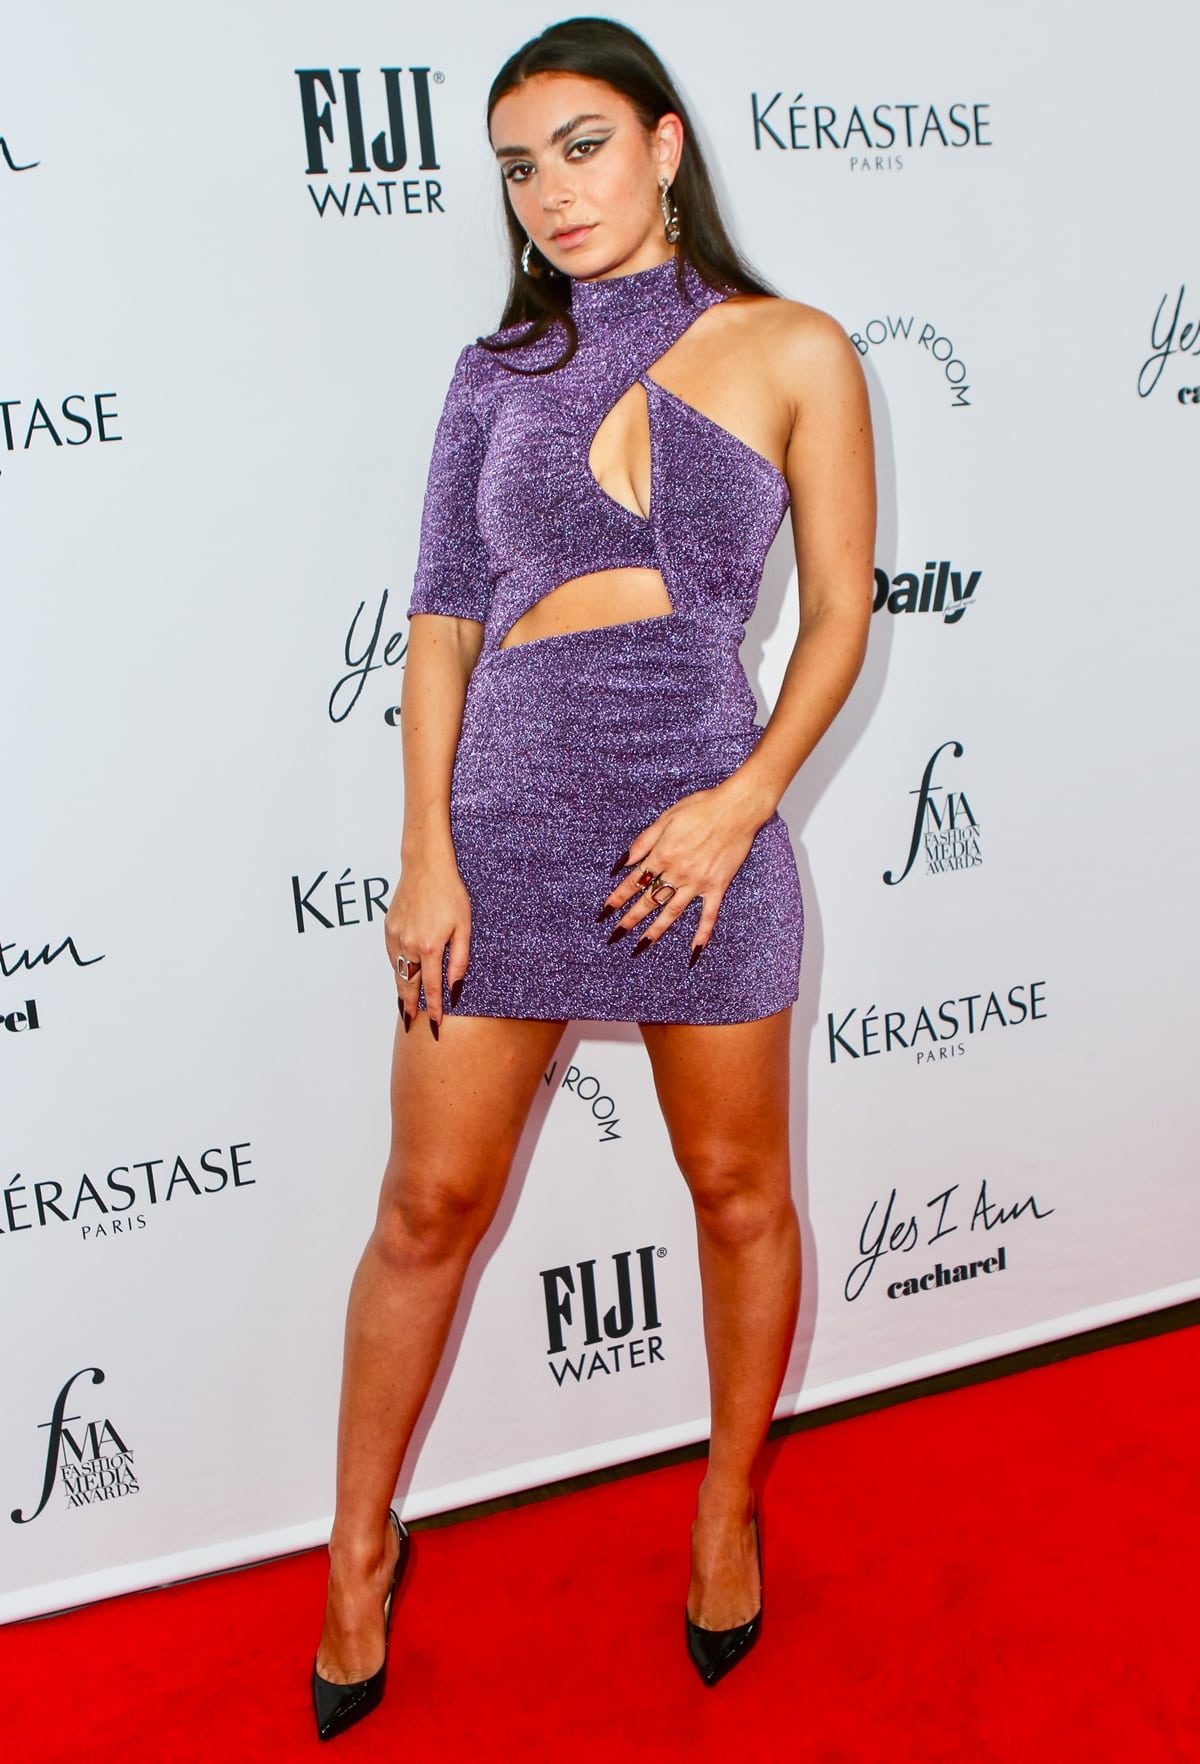 Charli XCX in a Stella McCartney dress at The Daily Front Row's 2021 Fashion Media Awards